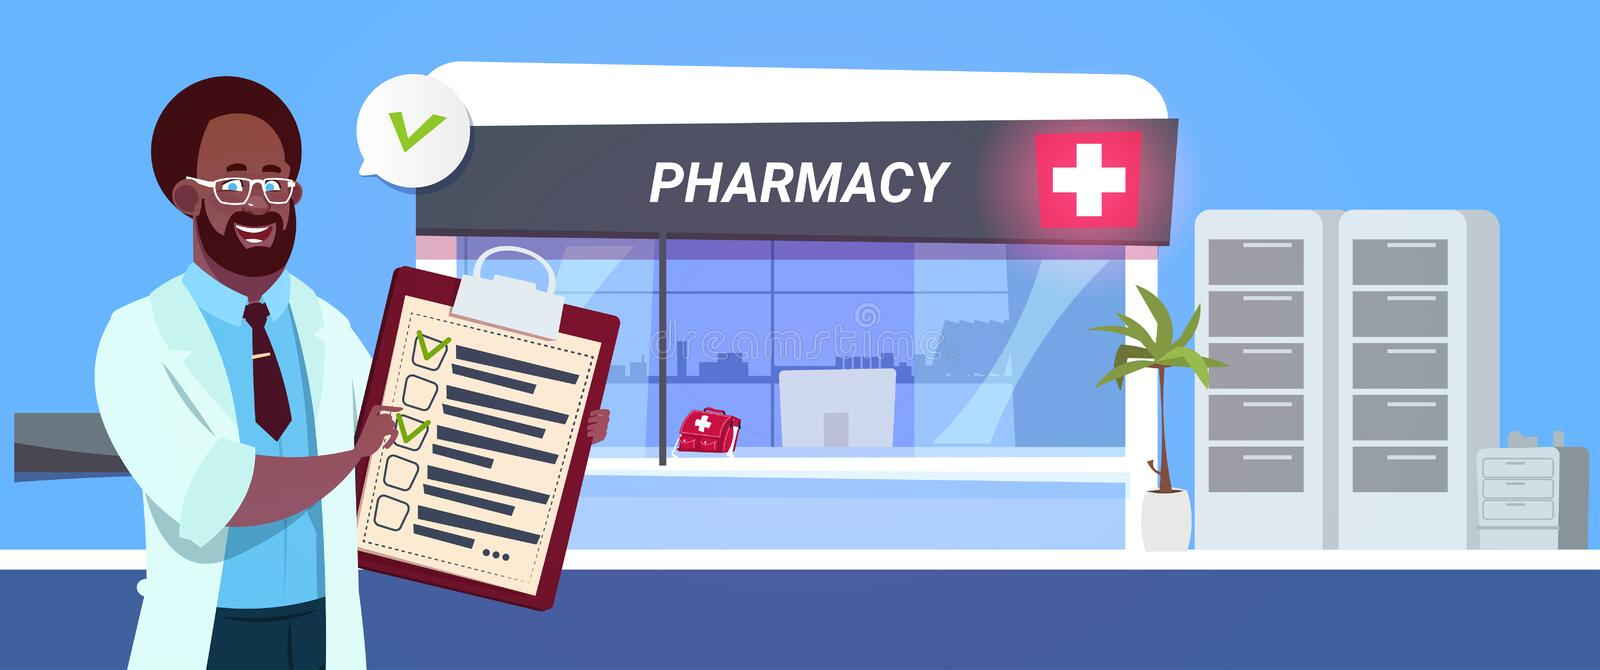 African American Man Doctor With Clipboard Over Pharmacy Store In Modern Hospital Drugstore Shop Concept. Flat Vector Illustration vector illustration